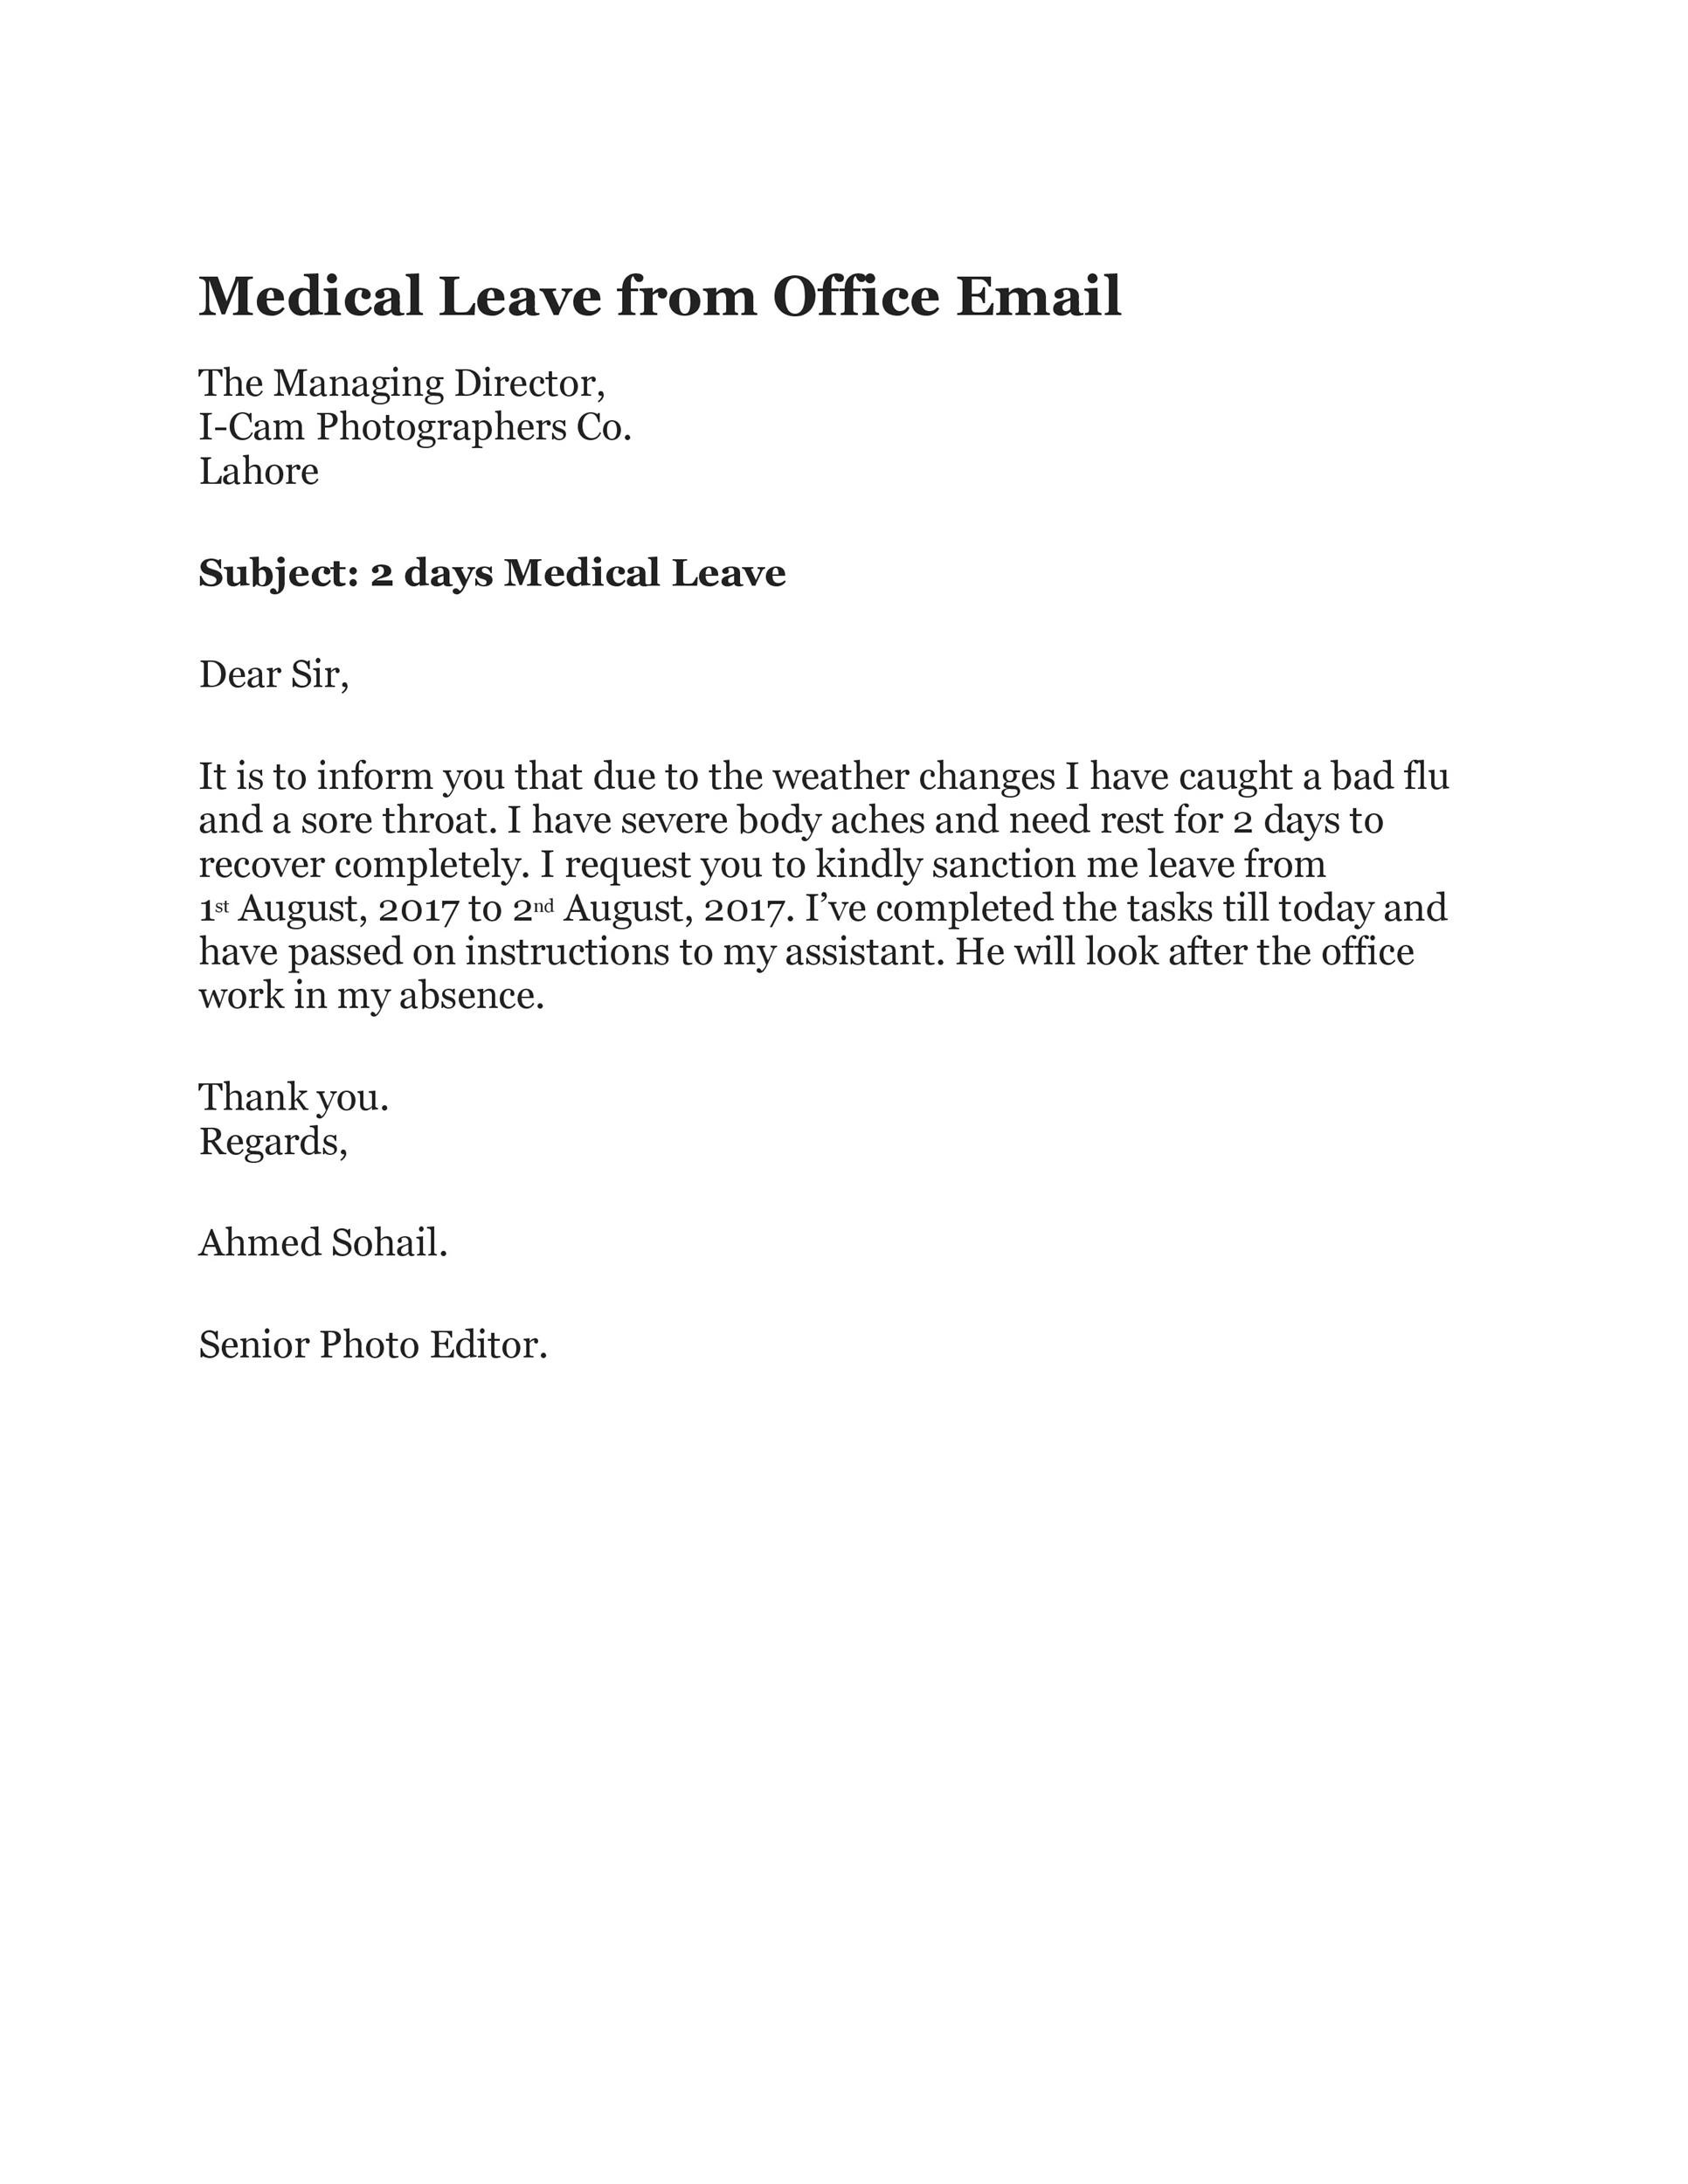 Free sick leave email 38